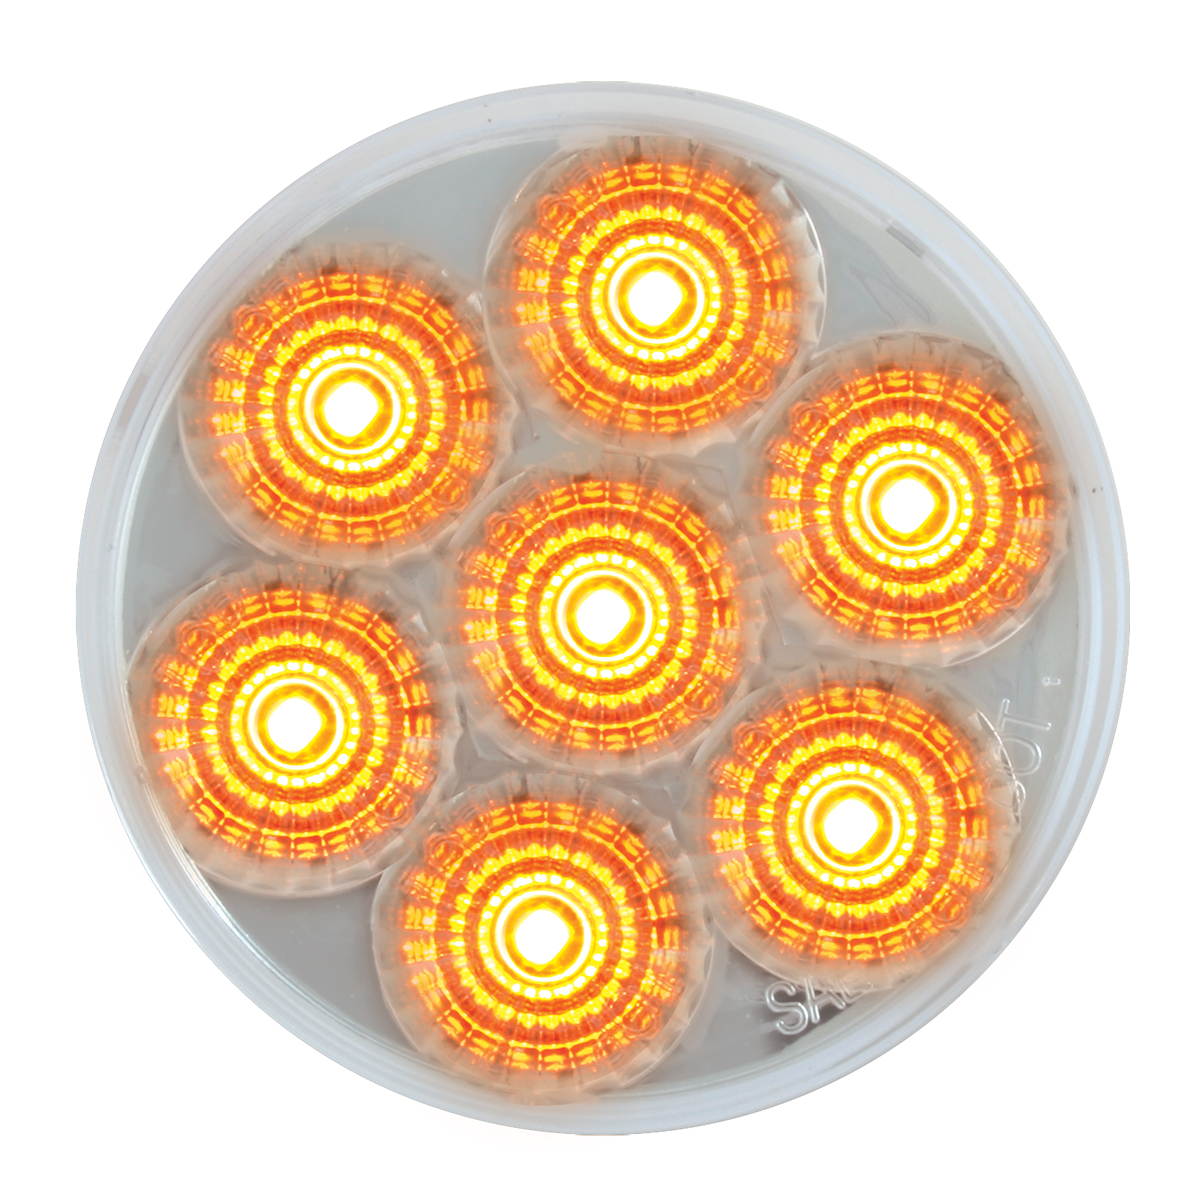 "76661 2-1/2"" Spyder LED Marker Light"